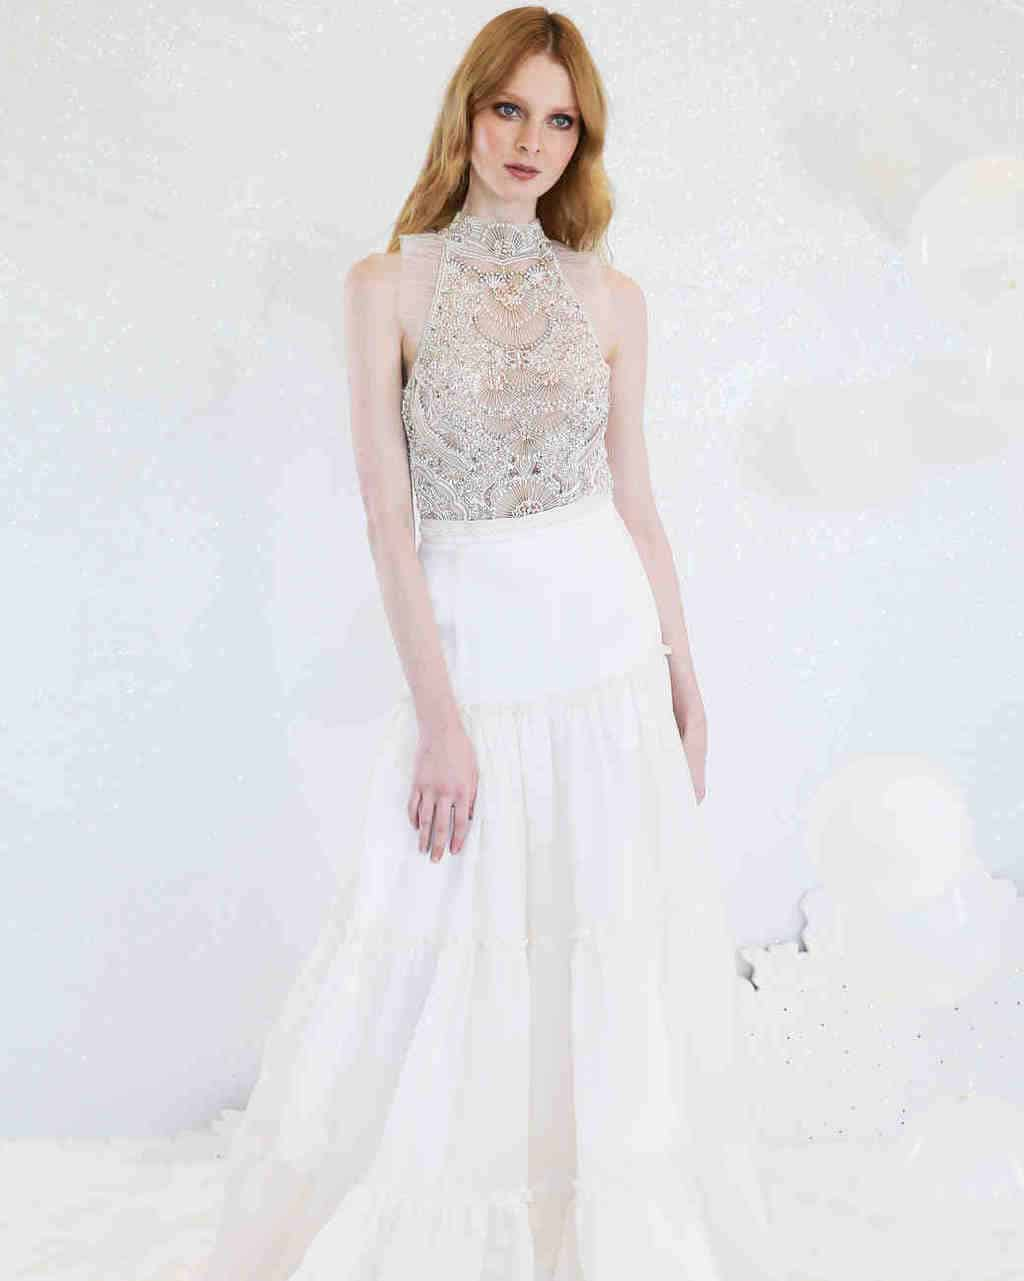 persy-wedding-dress-fall2017-6203351-005_vert